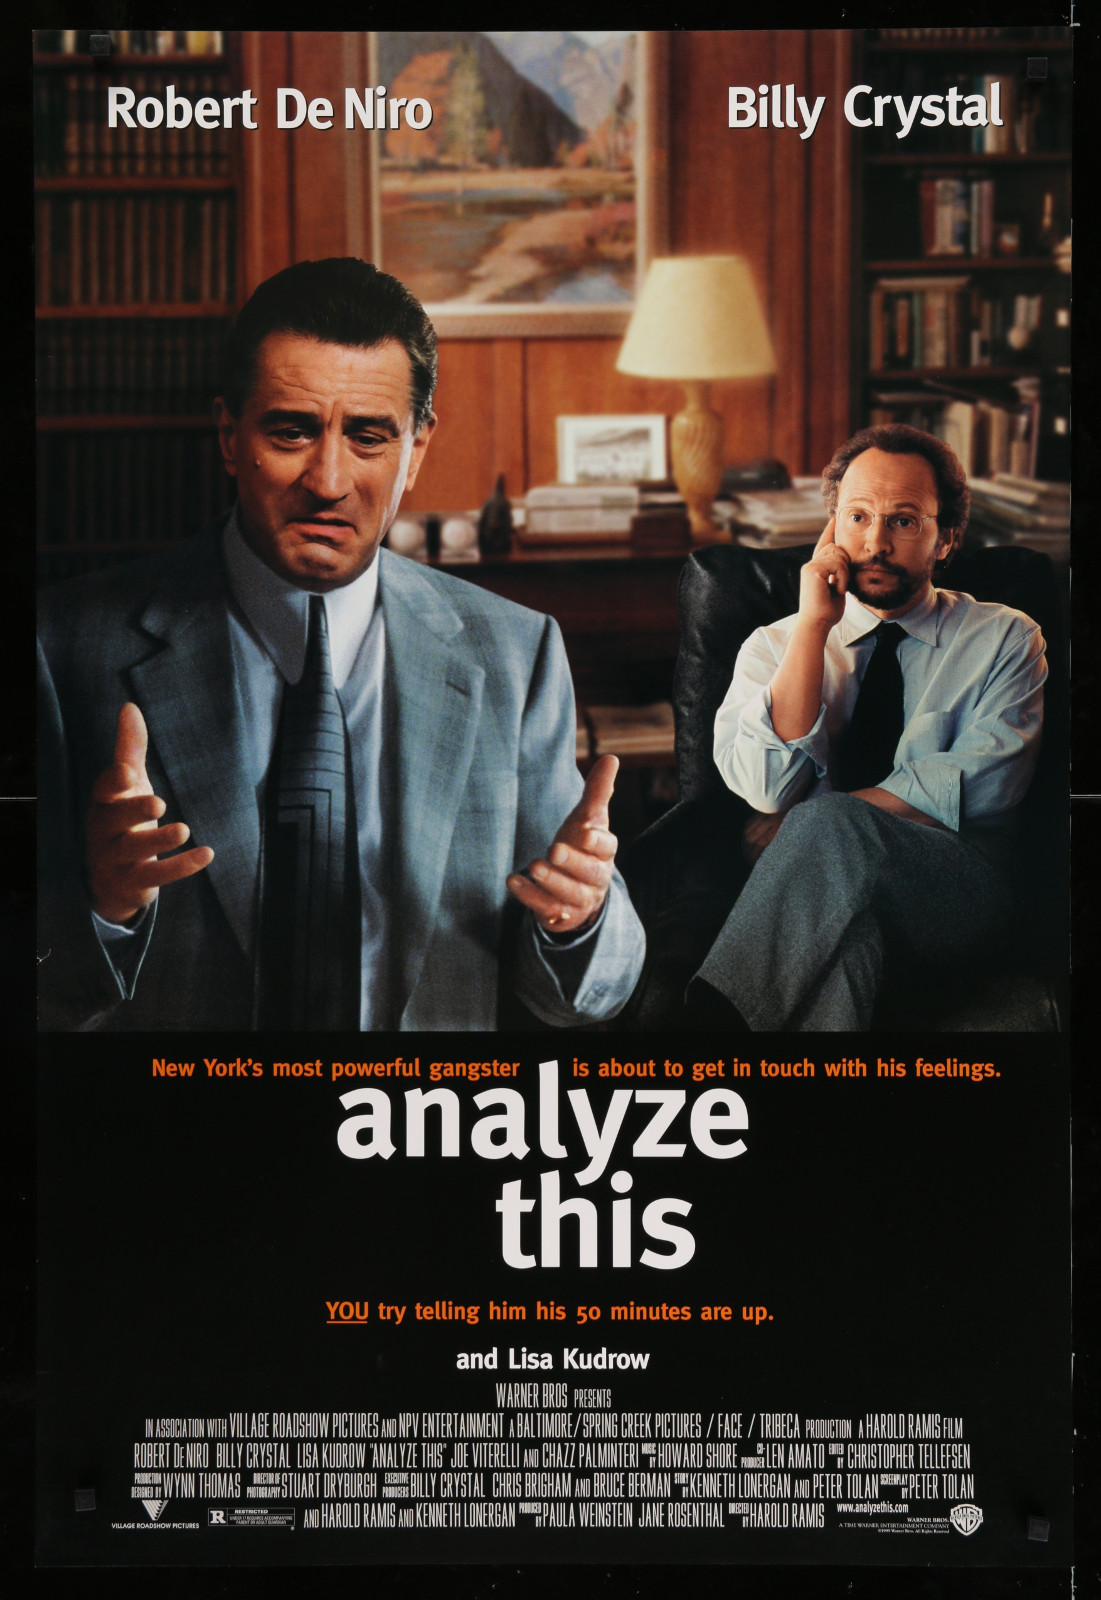 Analyze This 2A393 A Part Of A Lot 23 Unfolded Mostly Double-Sided 27X40 One-Sheets '90S Great Movie Images!